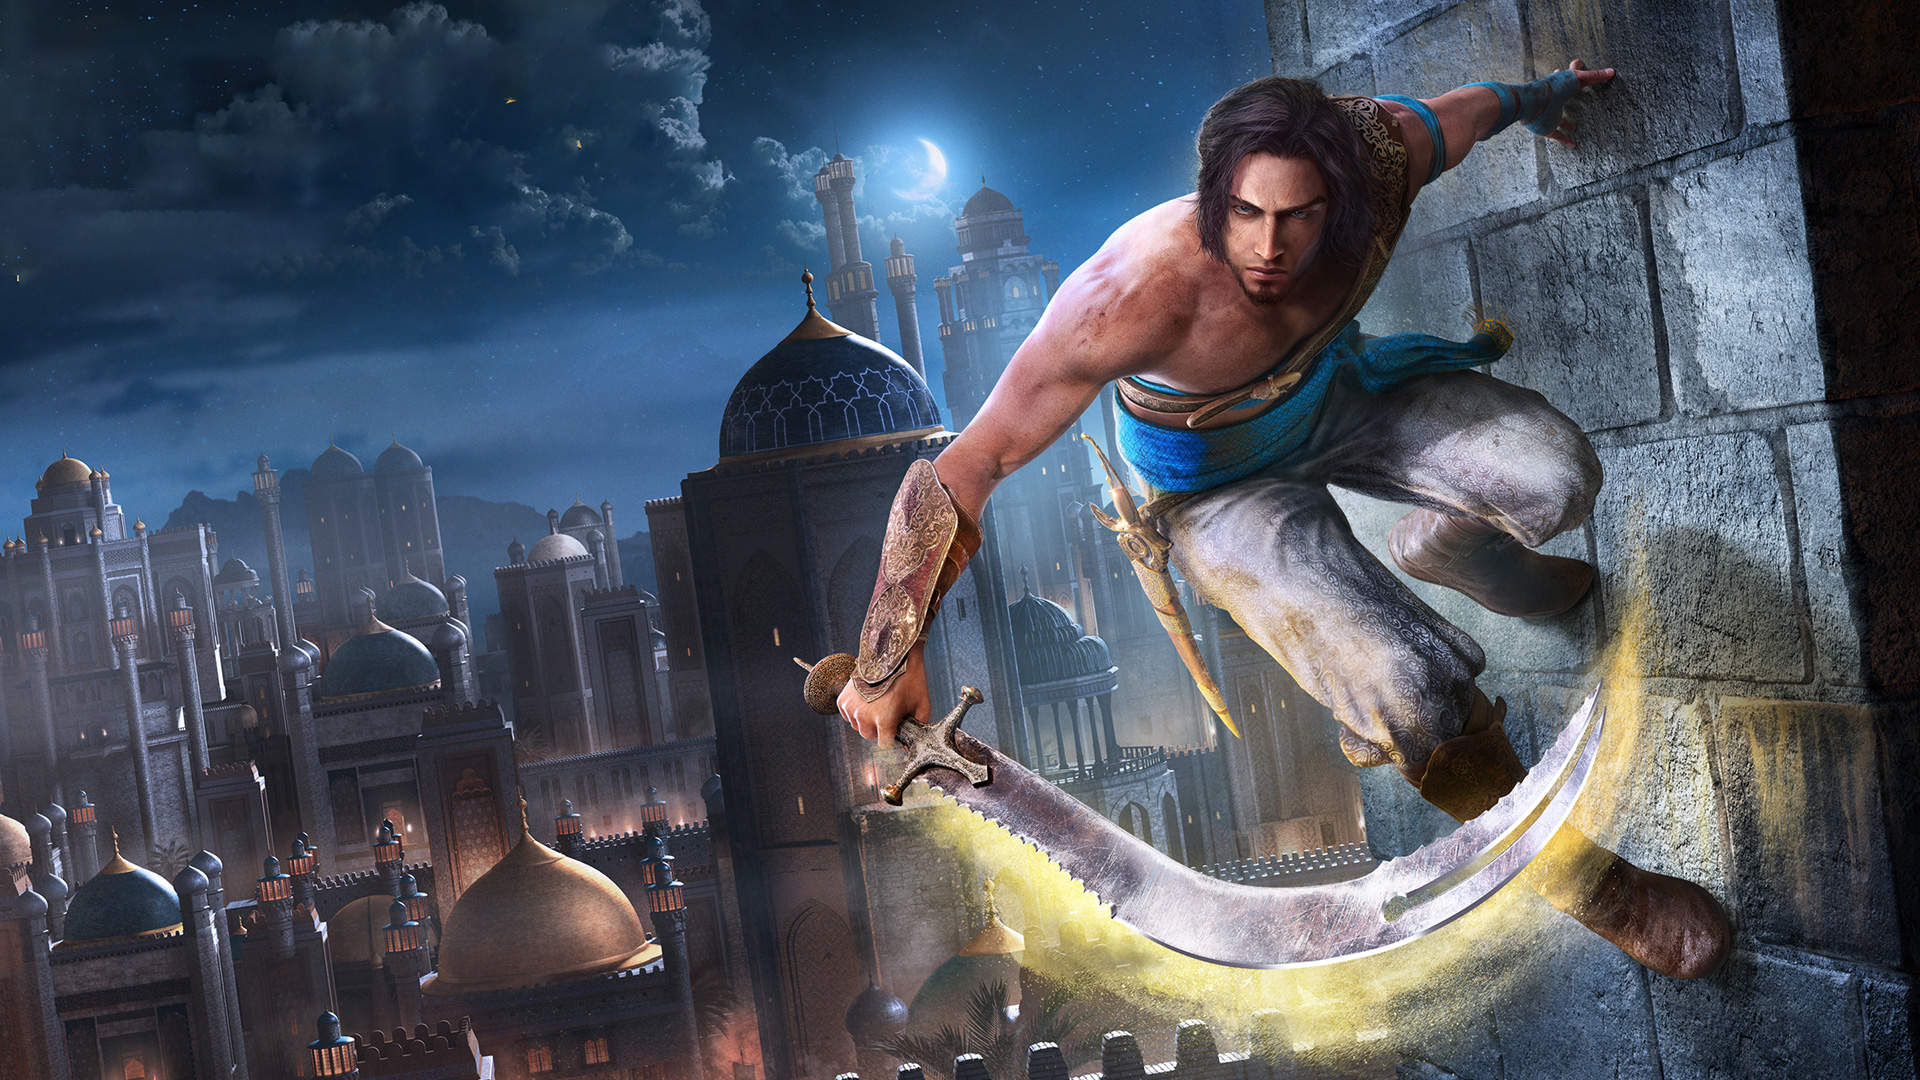 《Prince of Persia: The Sands of Time Remake》预定将在 2022 年推出,并会跳过本次的 Ubisoft Forward。